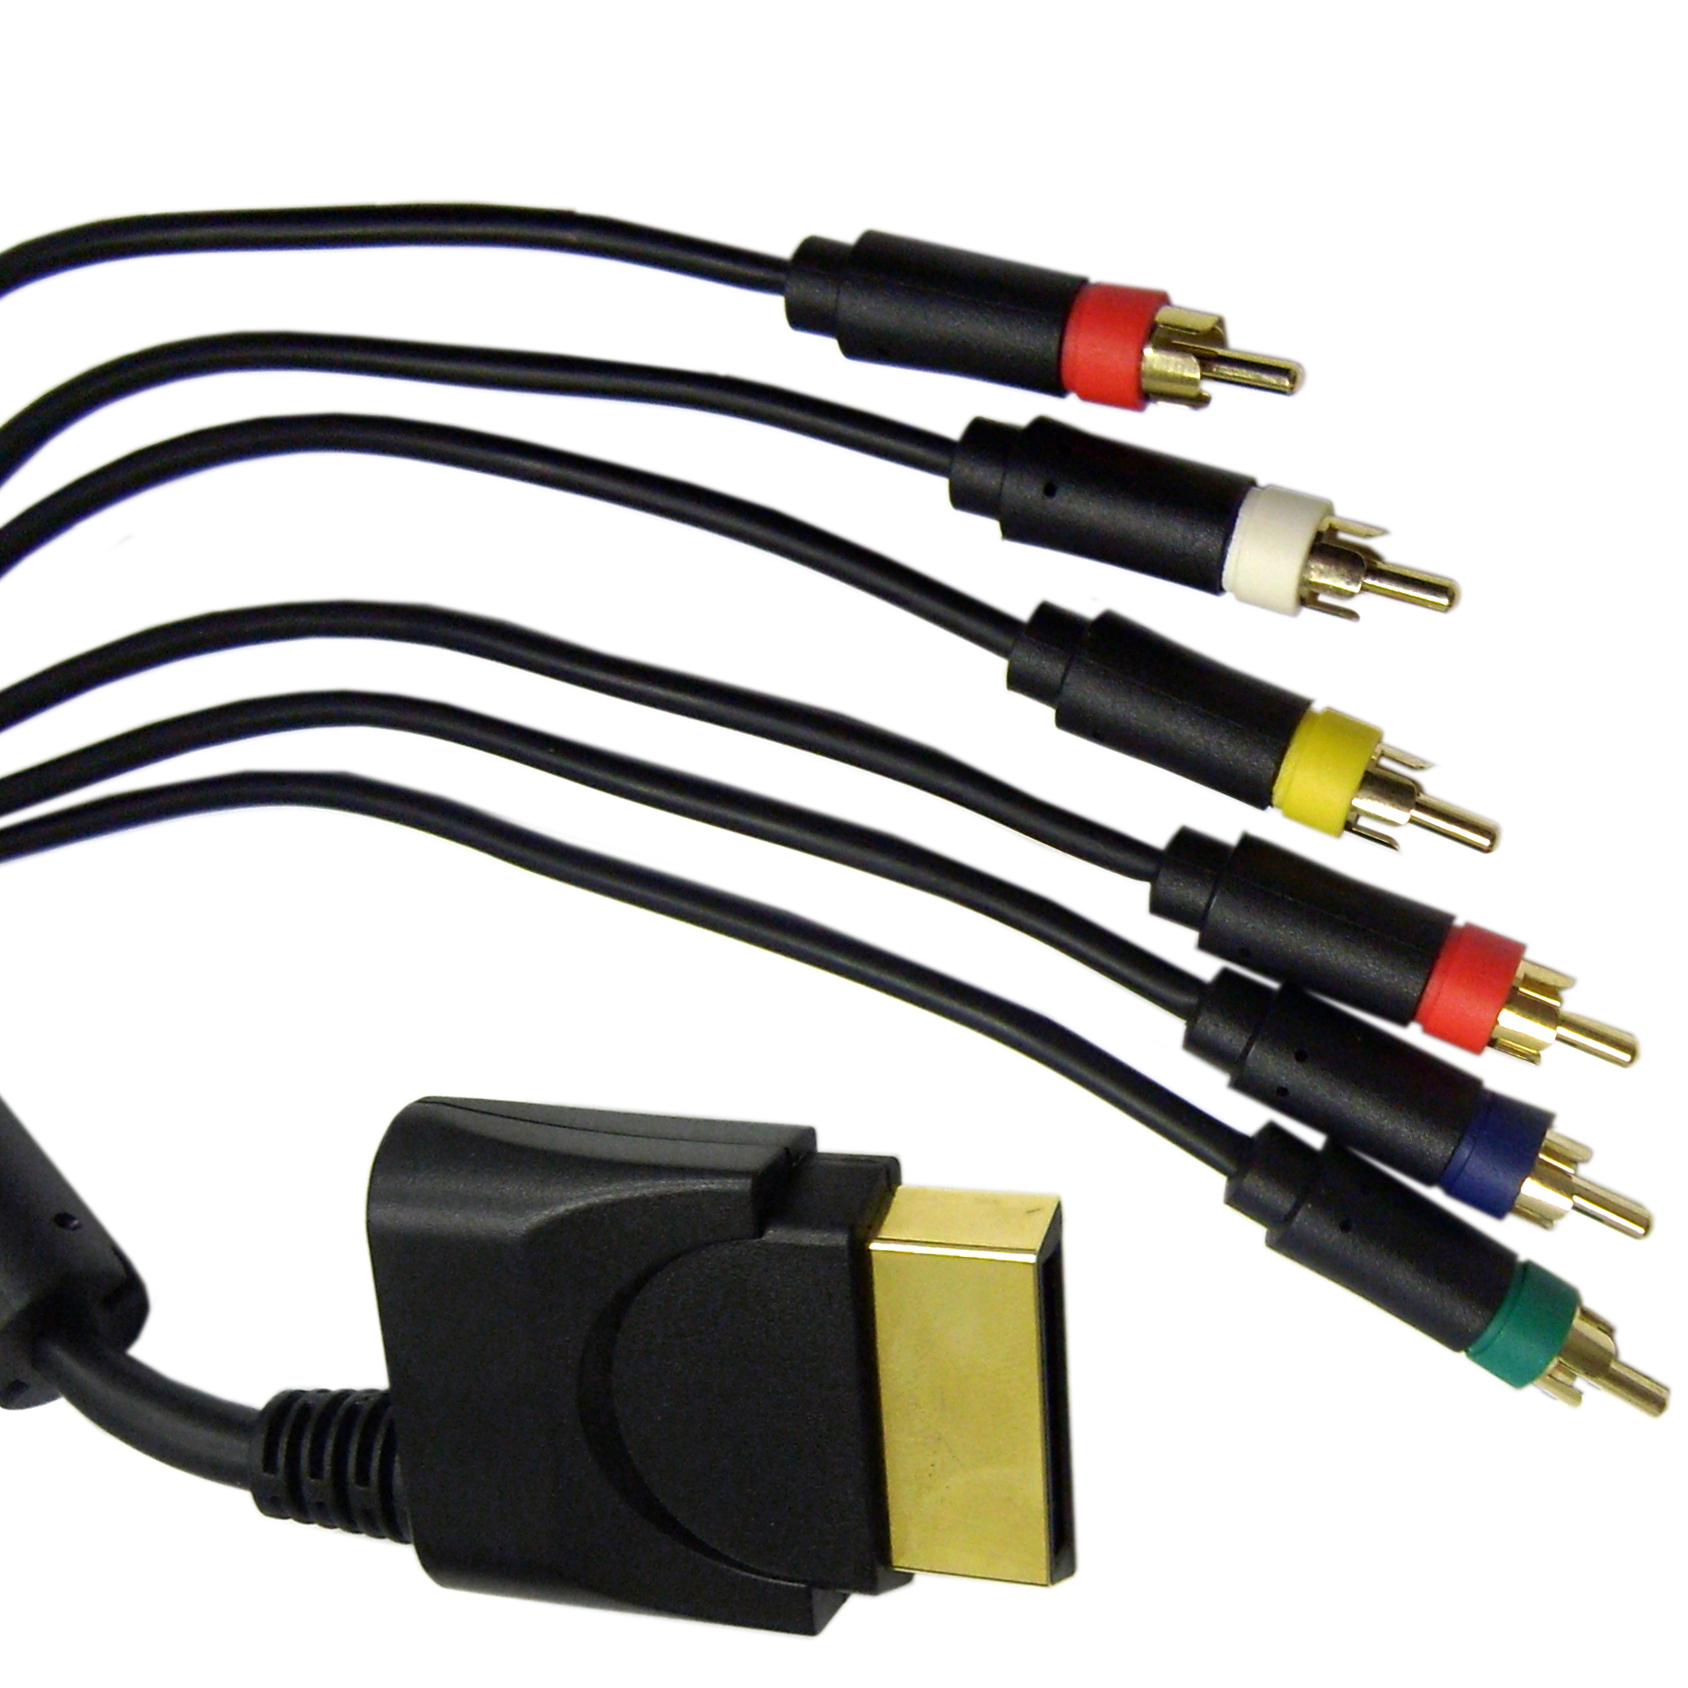 6ft Xbox 360 High Definition Component/Composite A/V Cable | HD